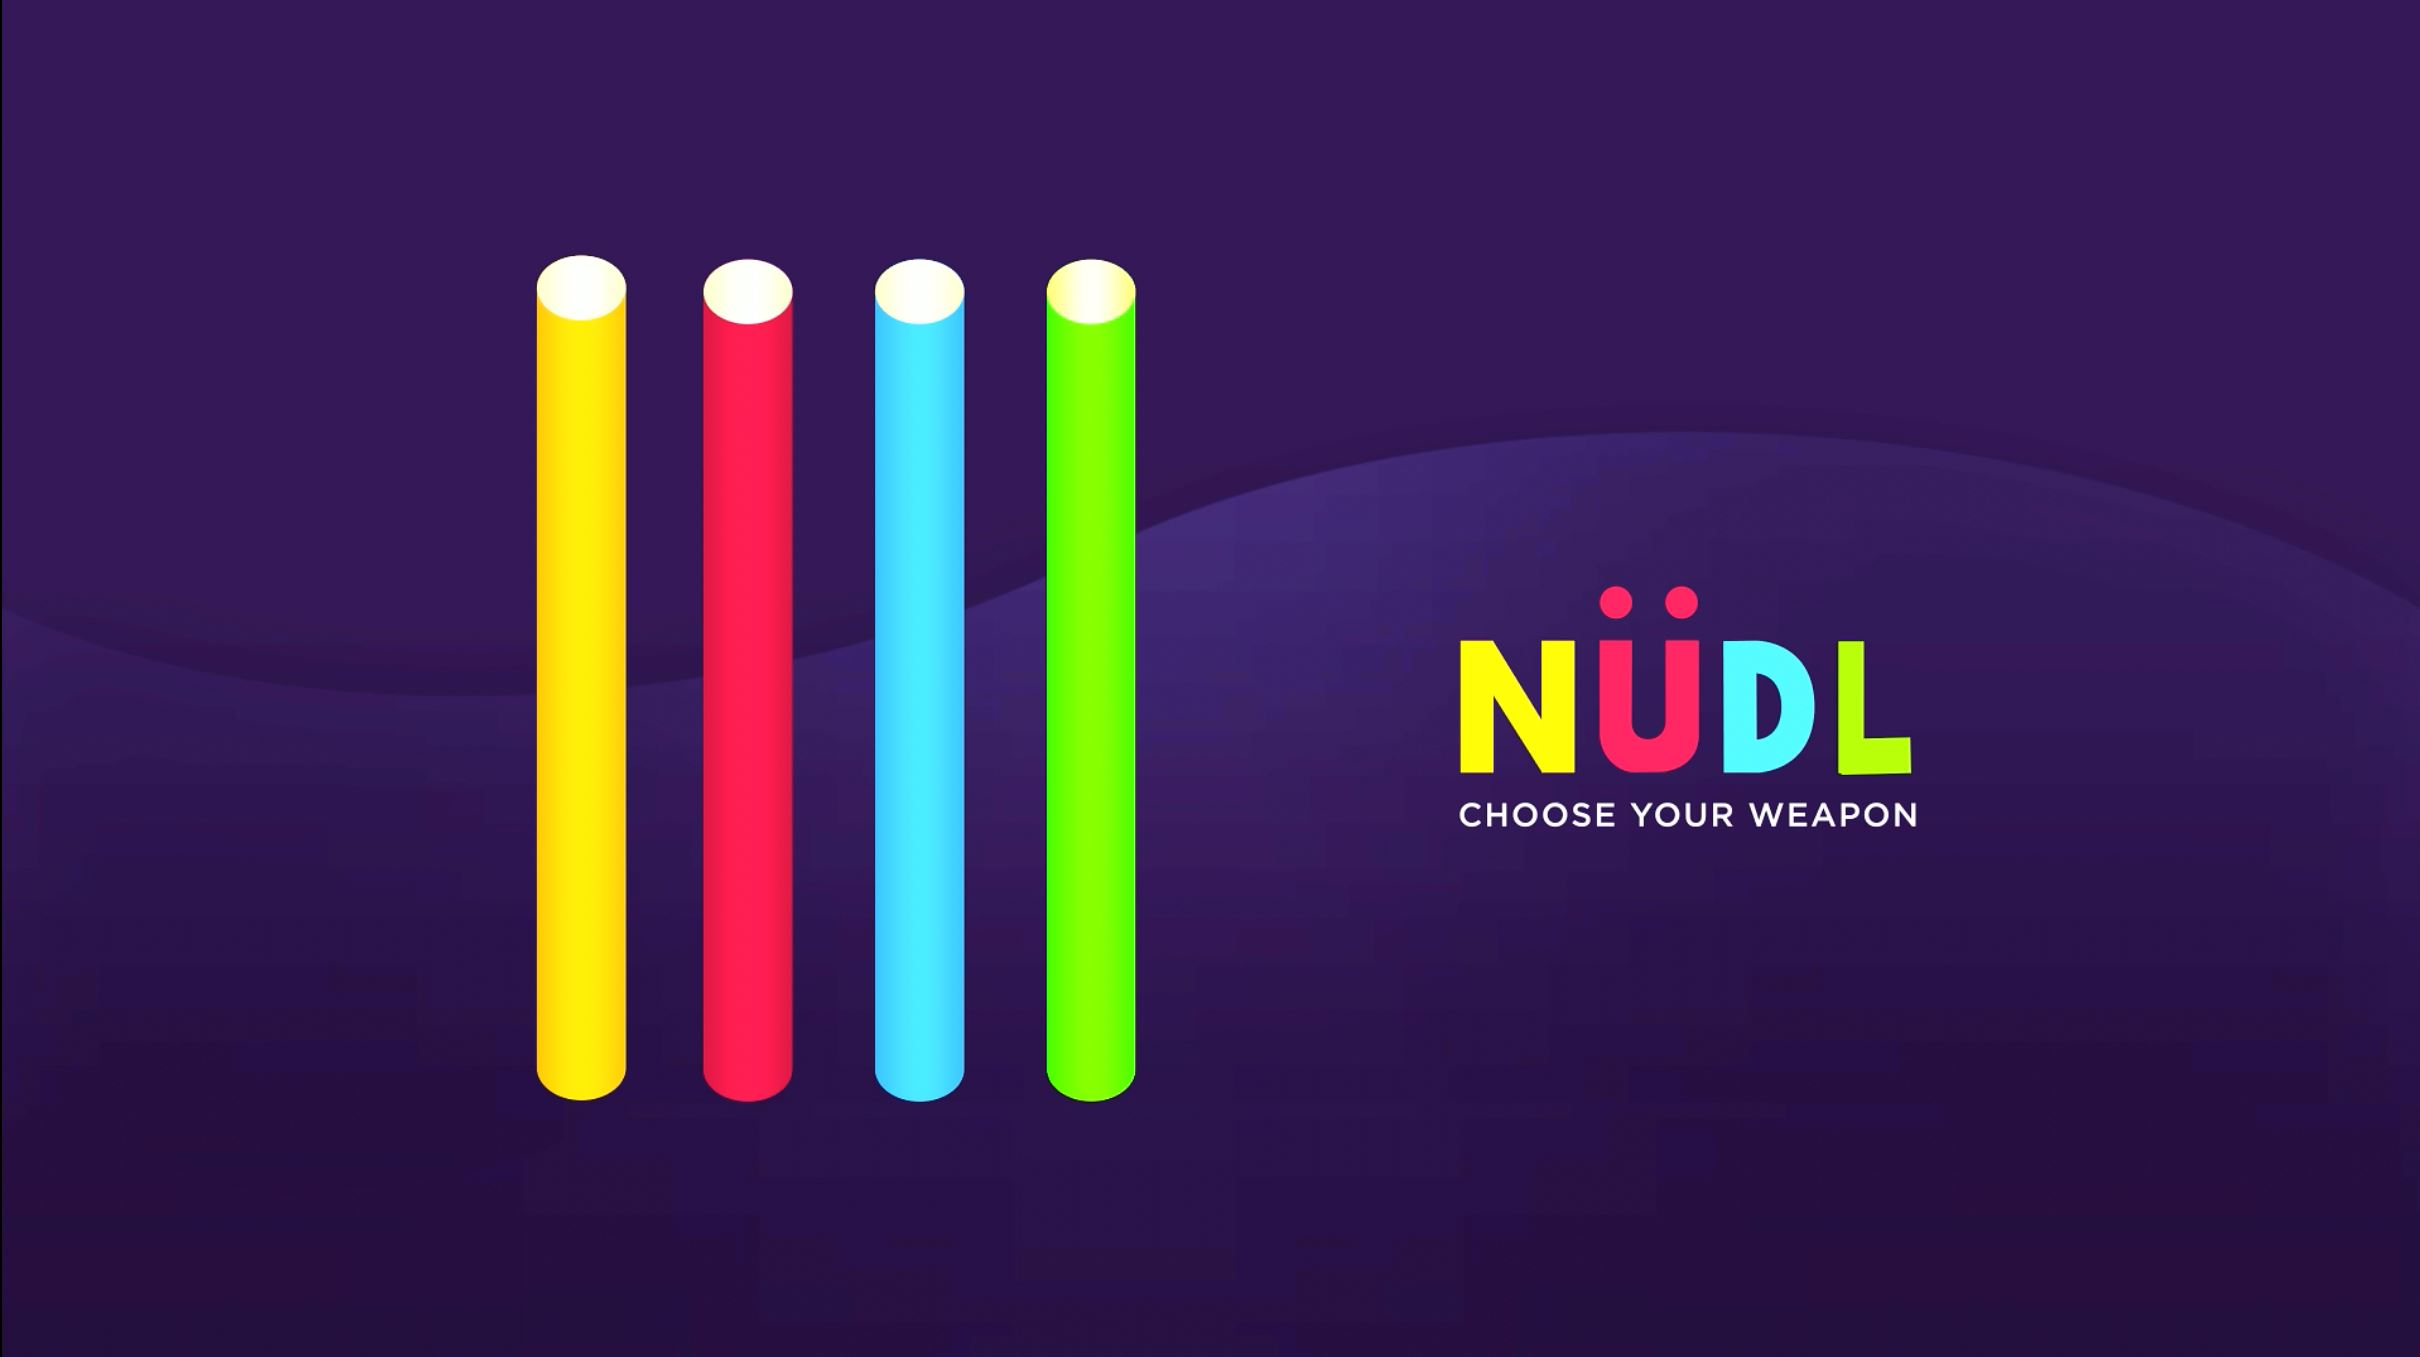 Pool Nudl Logo Animation